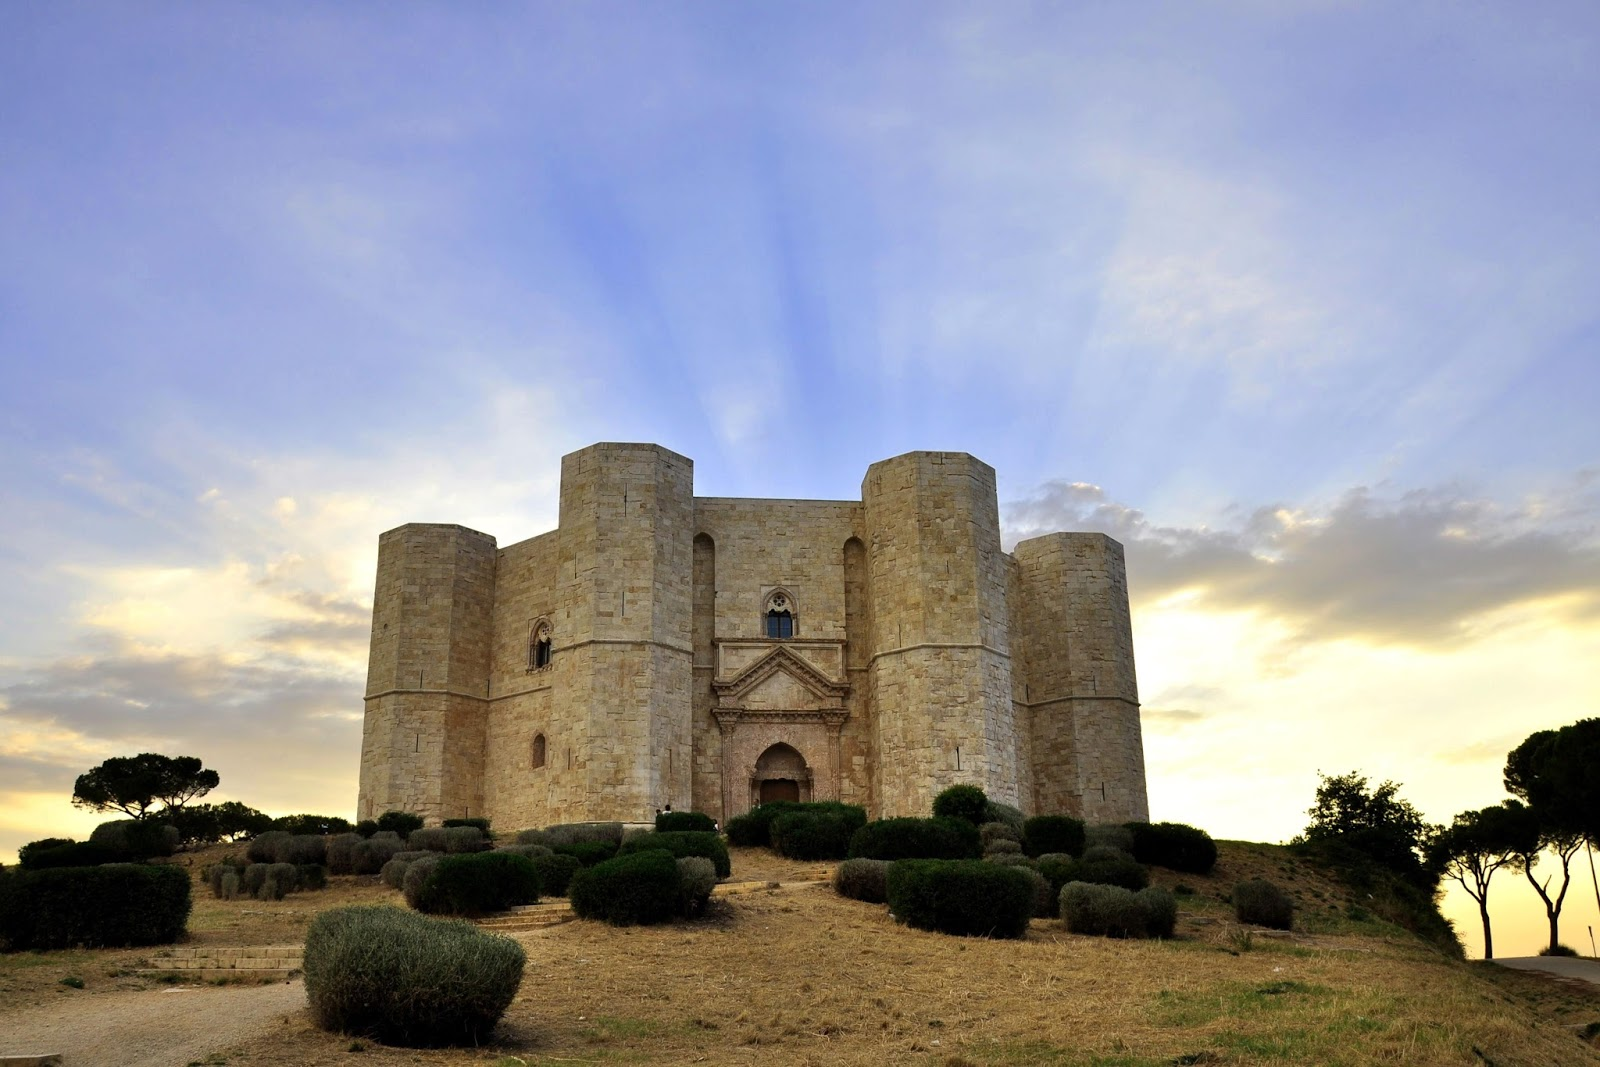 Fall Ceiling Wallpaper Hd Hidden Architecture Castel Del Monte